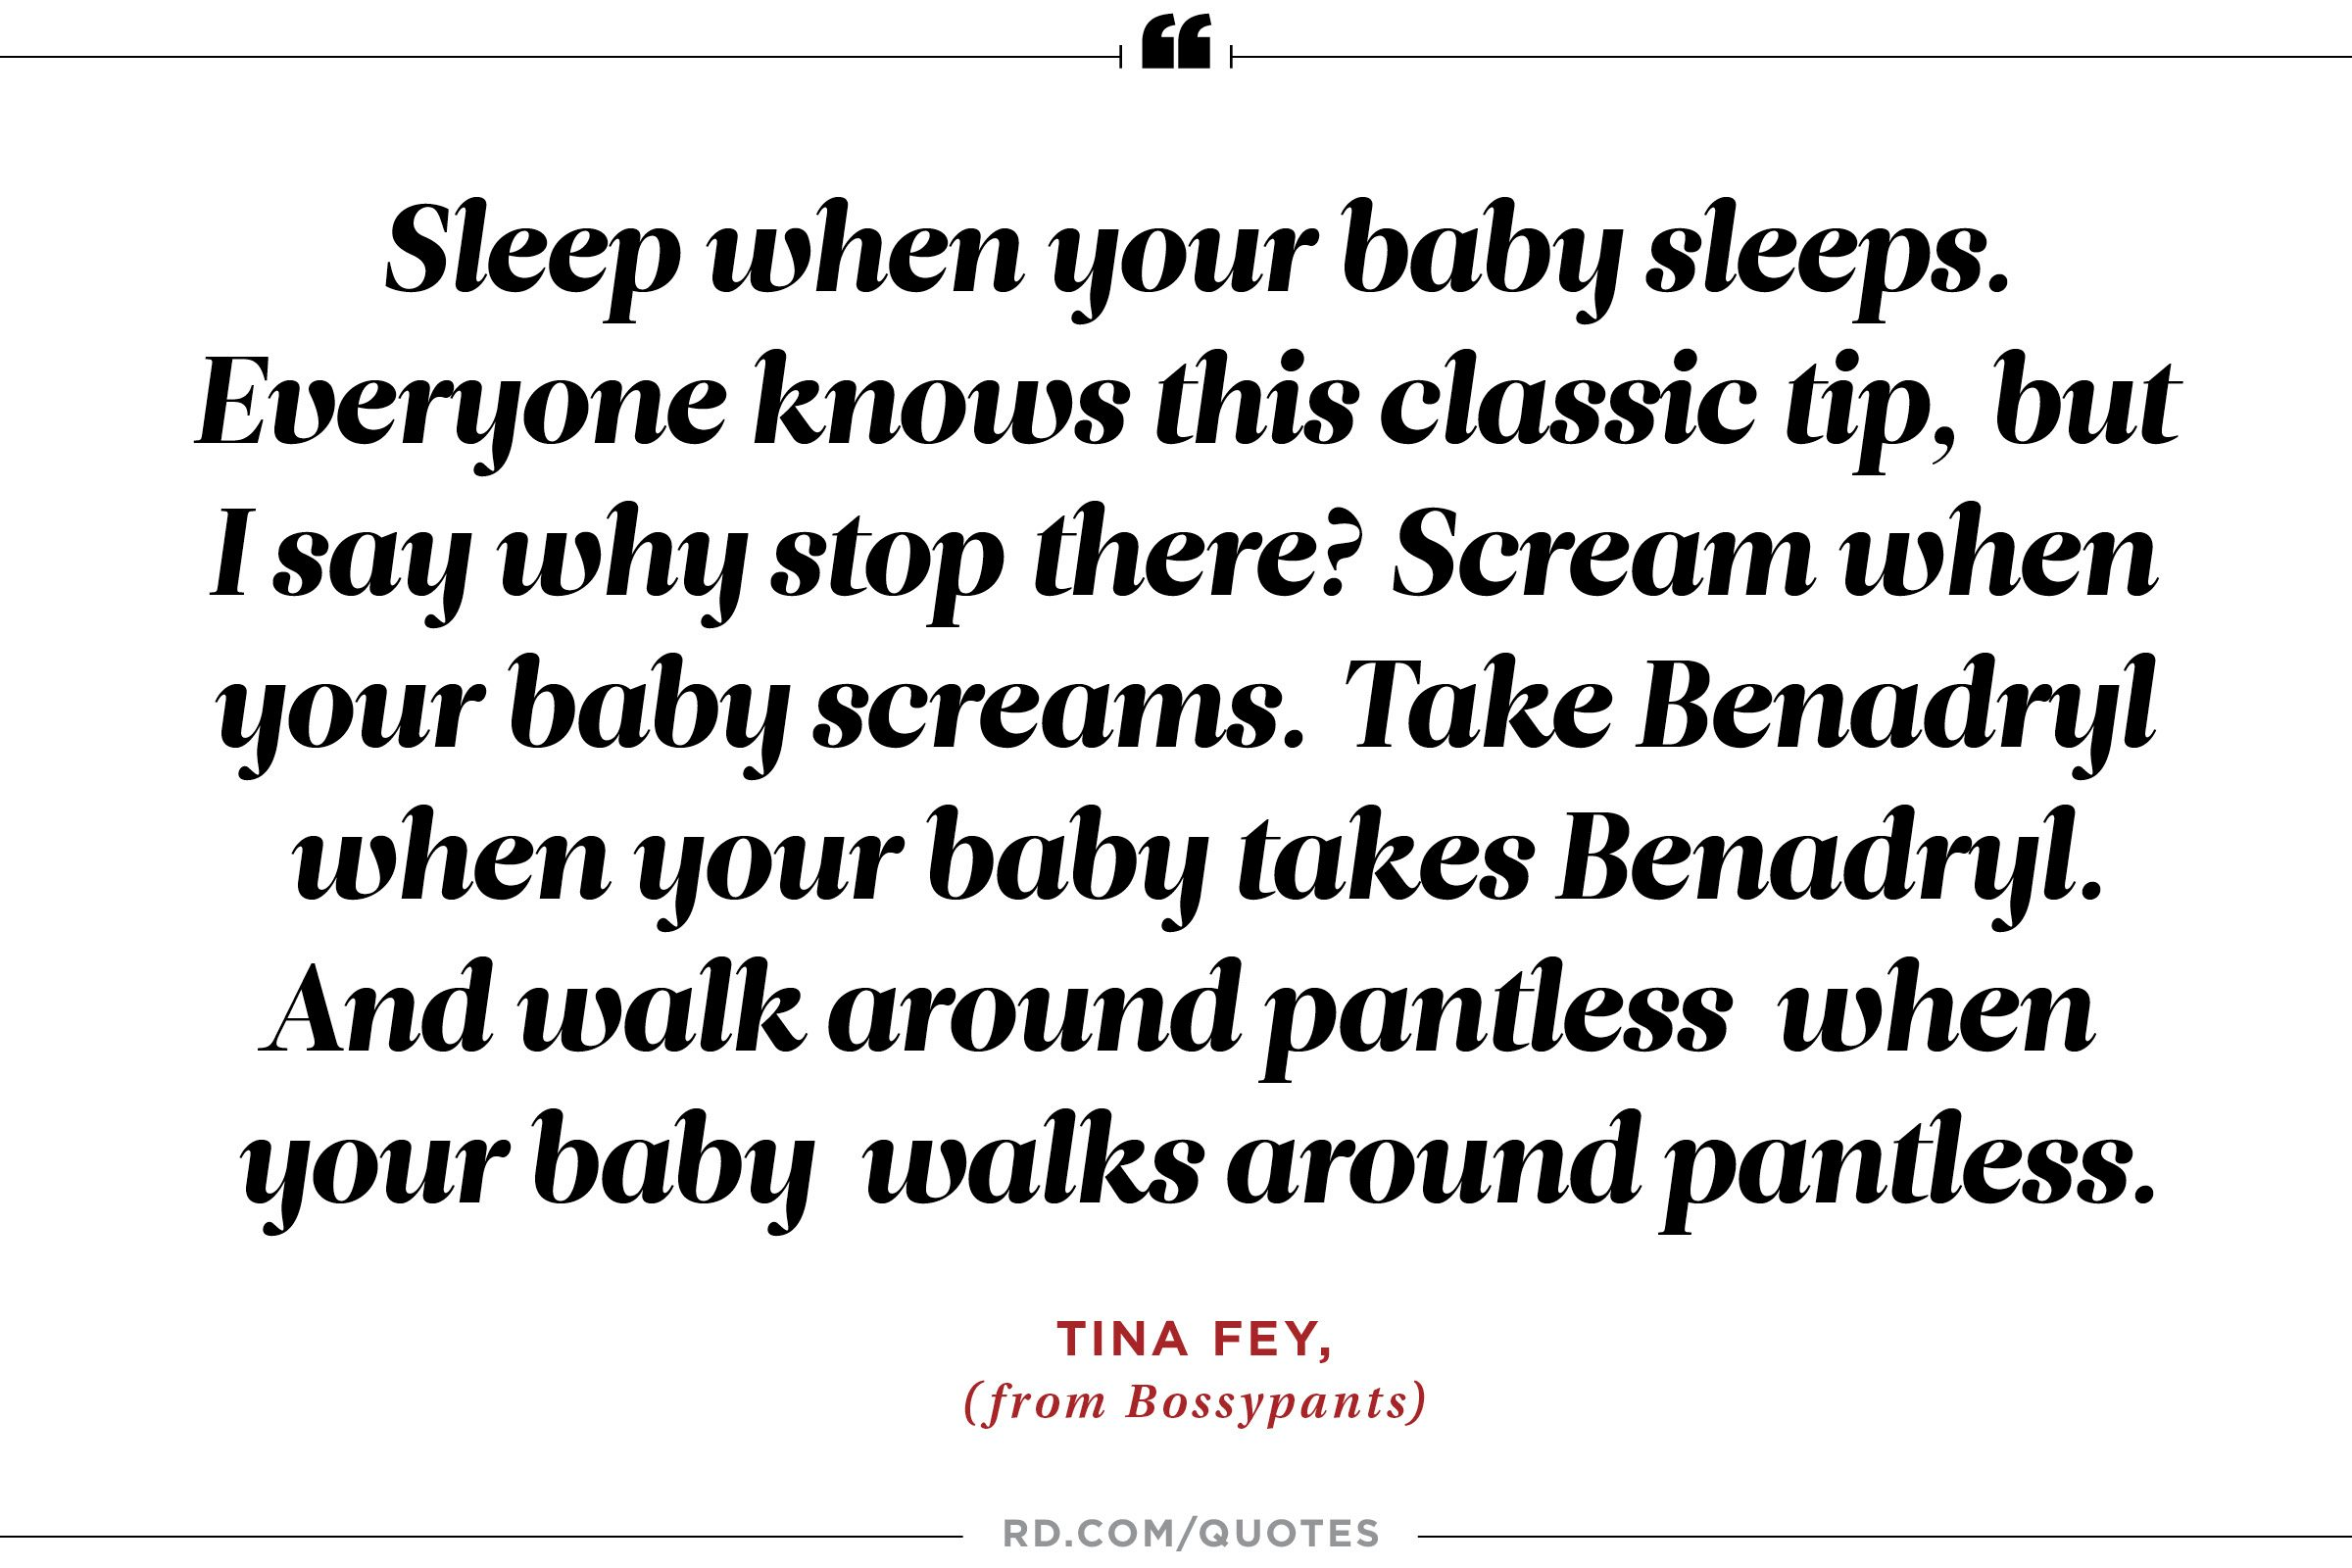 funny sleep quotes worth sharing over coffee reader s digest reader s digest